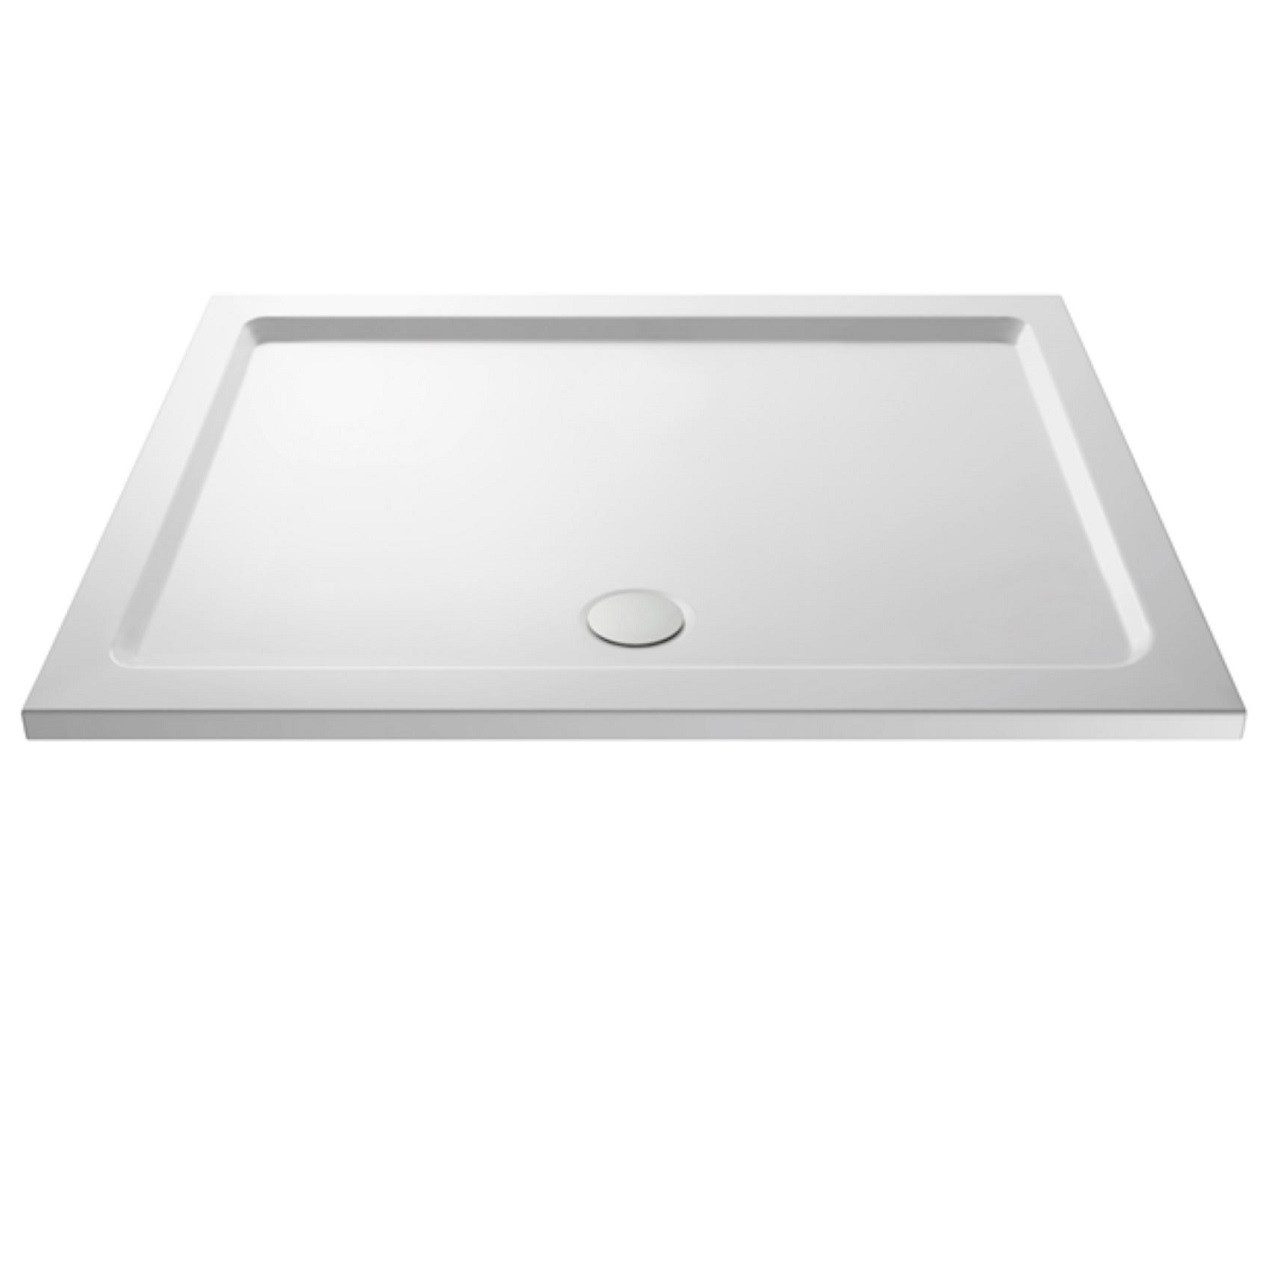 Nuie Pearlstone 1500mm x 760mm Rectangular Shower Tray with Centre Edge Waste - NTP042